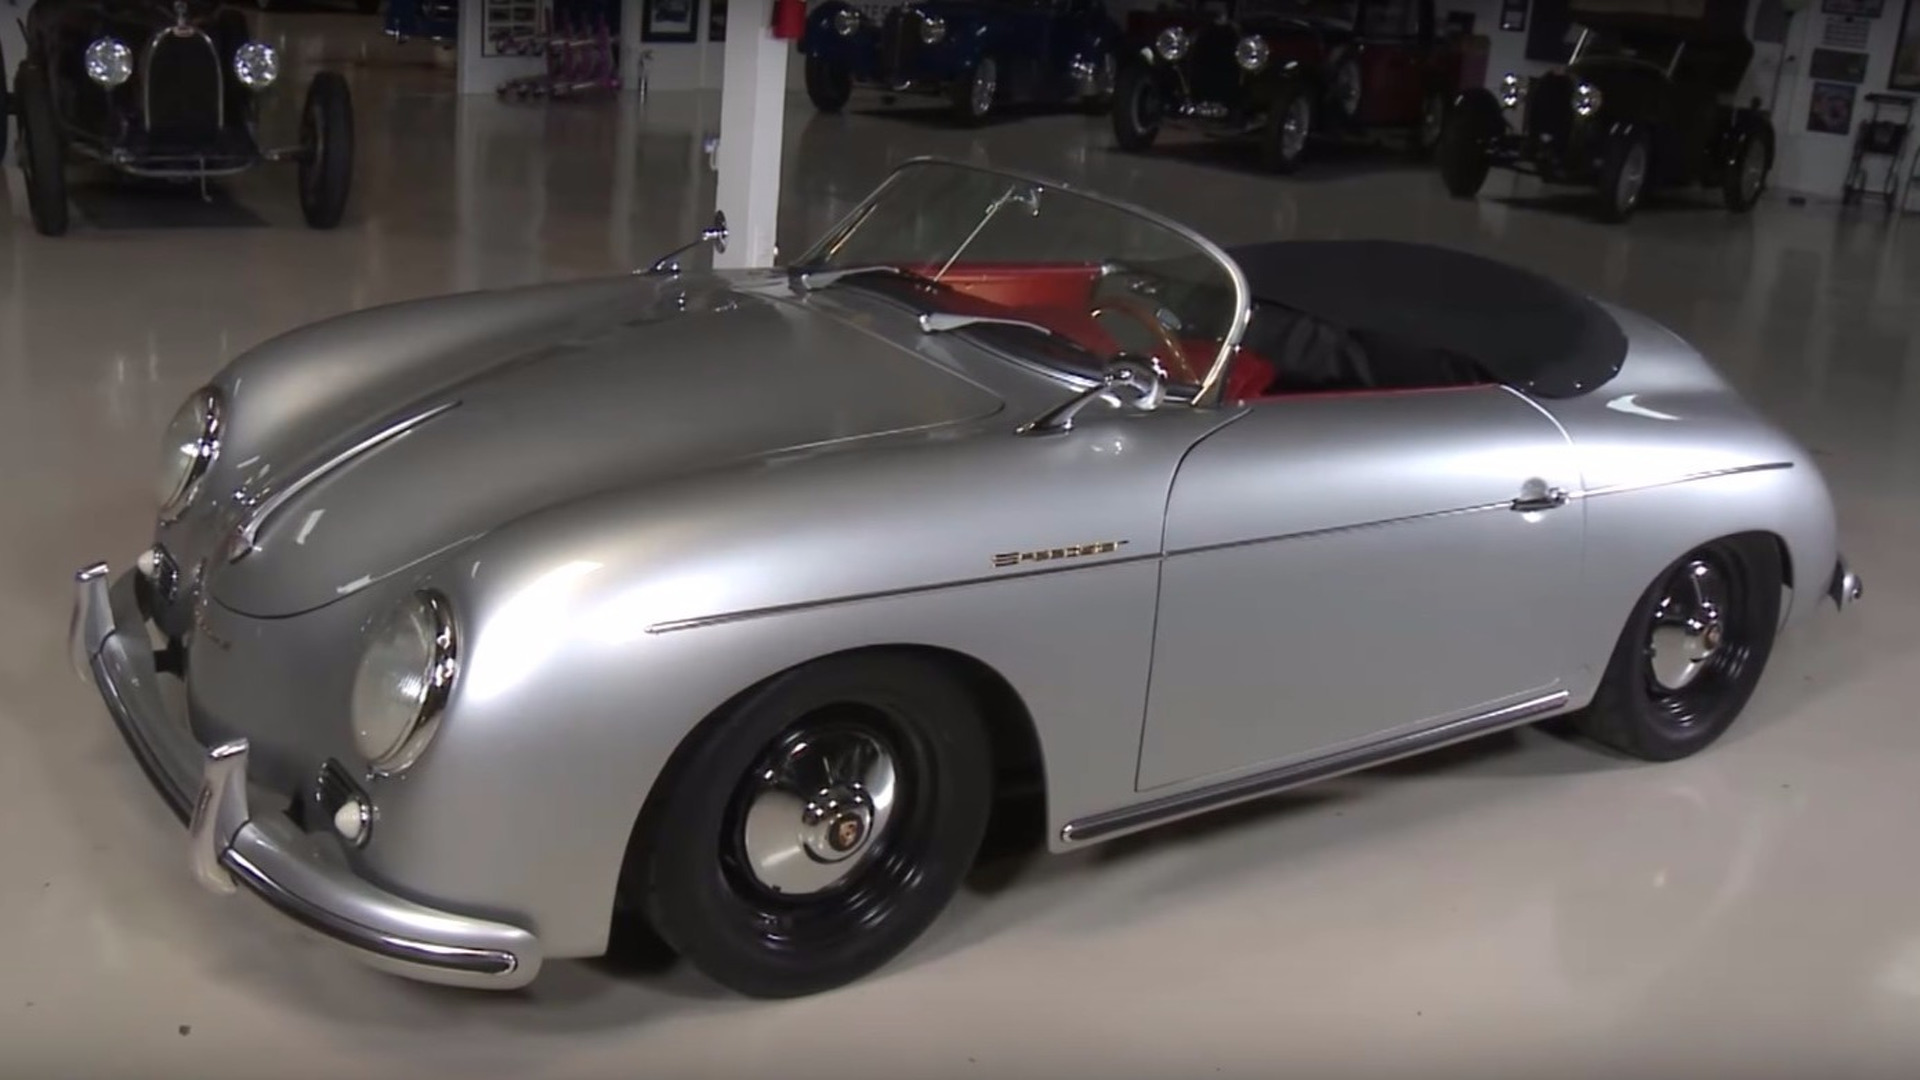 Jay Leno Tries A Porsche Speedster Replica With An Unusual